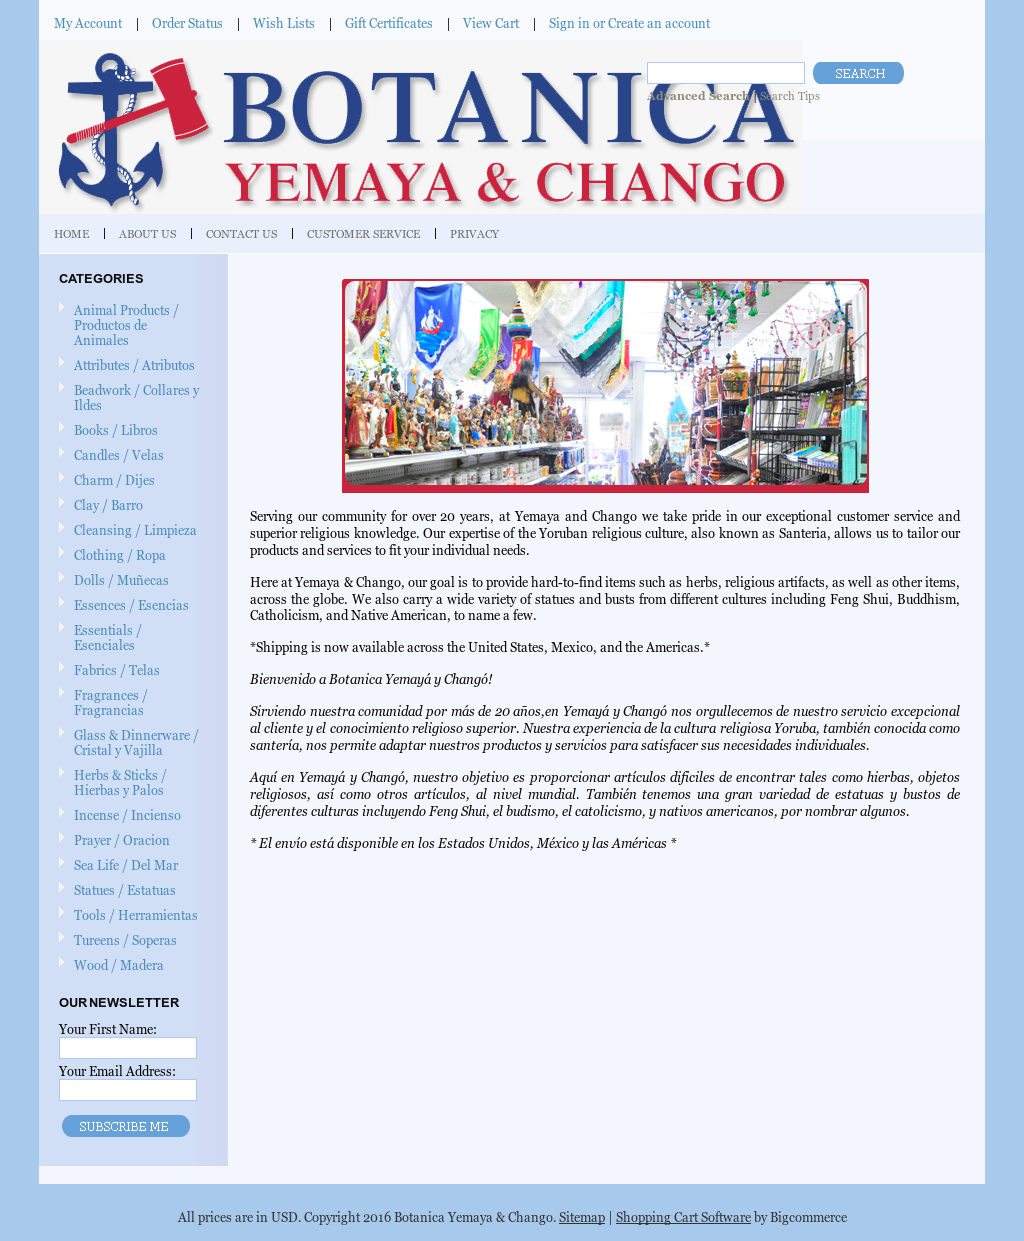 Botanica Yemaya & Chango Competitors, Revenue and Employees